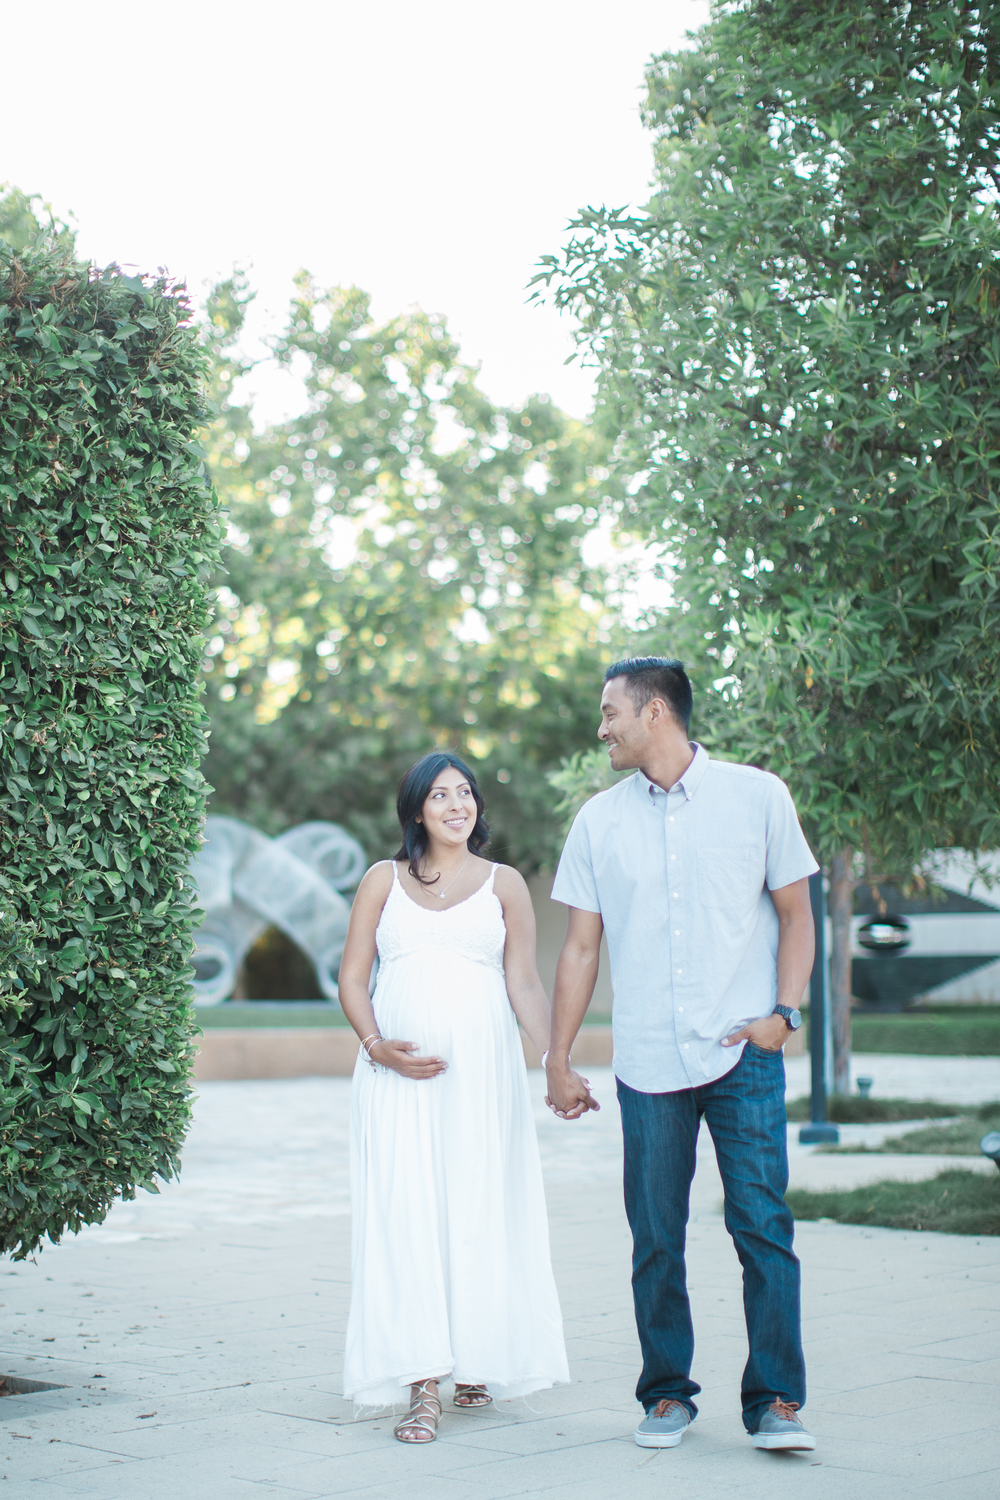 Marcella_Maternity_Cerritos_BrandonJFerlin_Photography-62.jpg